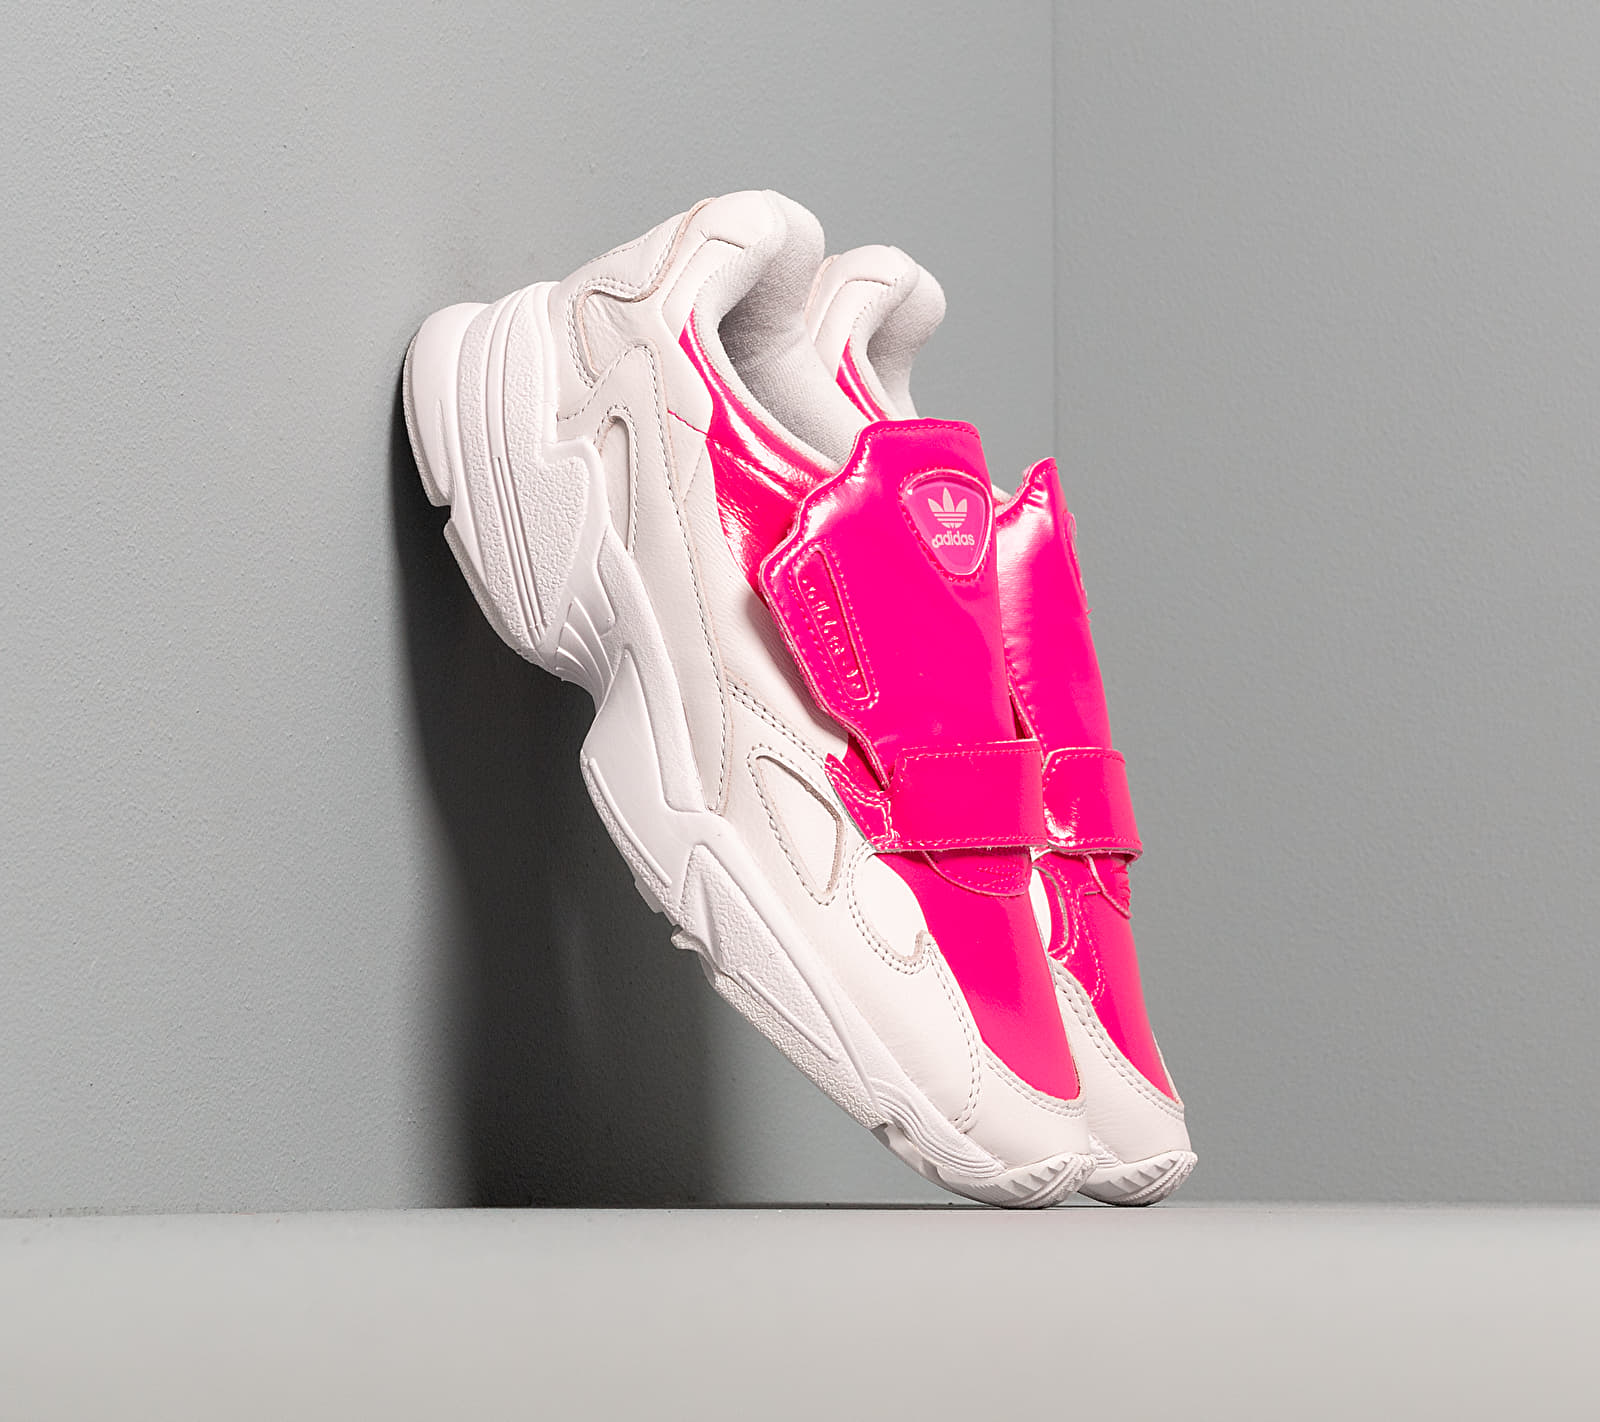 adidas Falcon Rx W Shock Pink/ Shock Pink/ Orchid Tint EUR 38 2/3